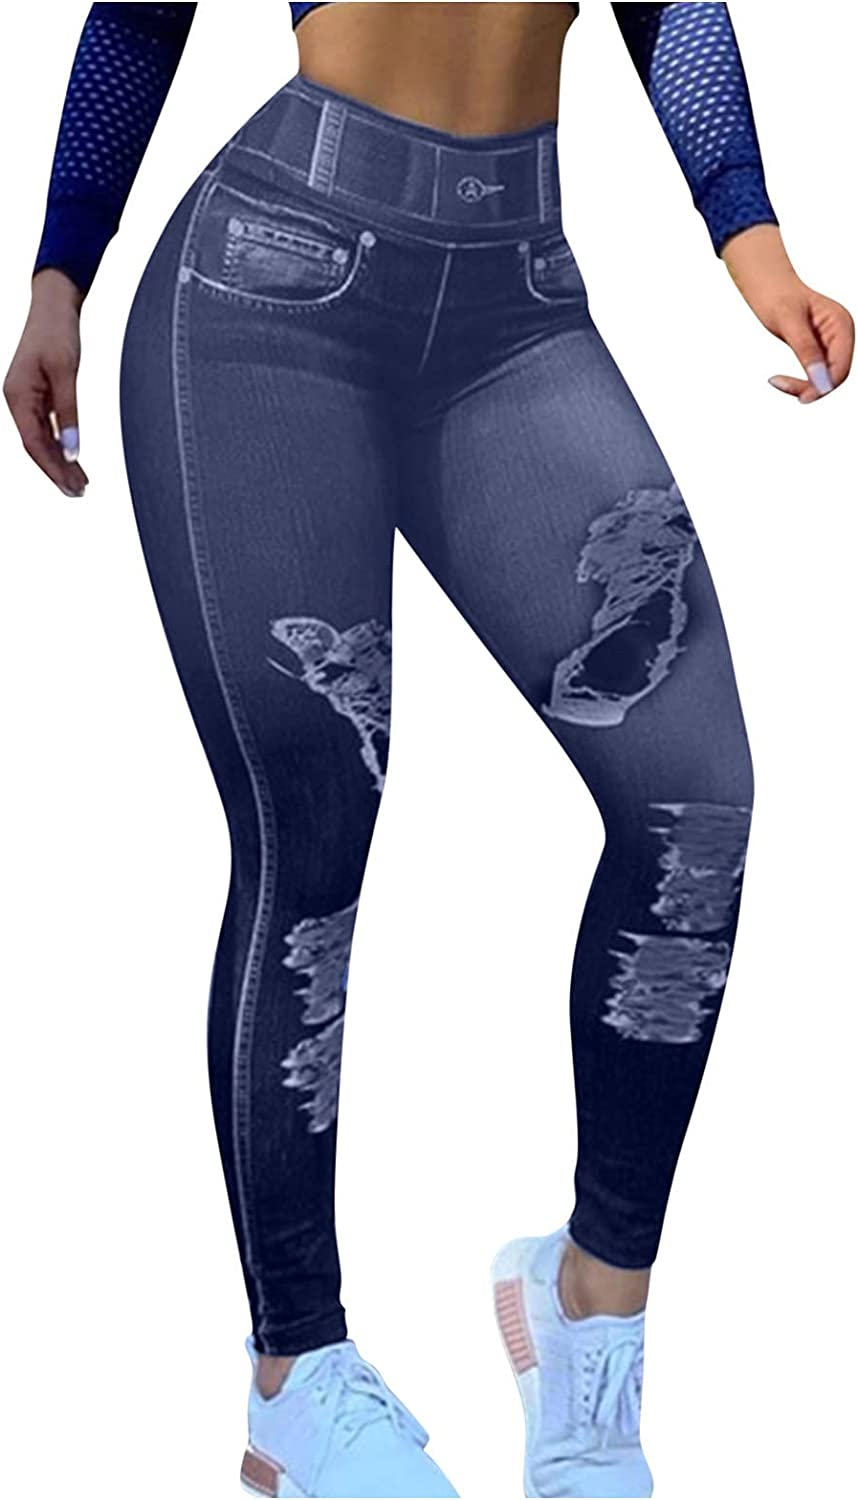 melupa Women Denim Print Fake Jeans Solid Colors Seamless Full Length Leggings Stretch High Waist Jeggings with Pockets